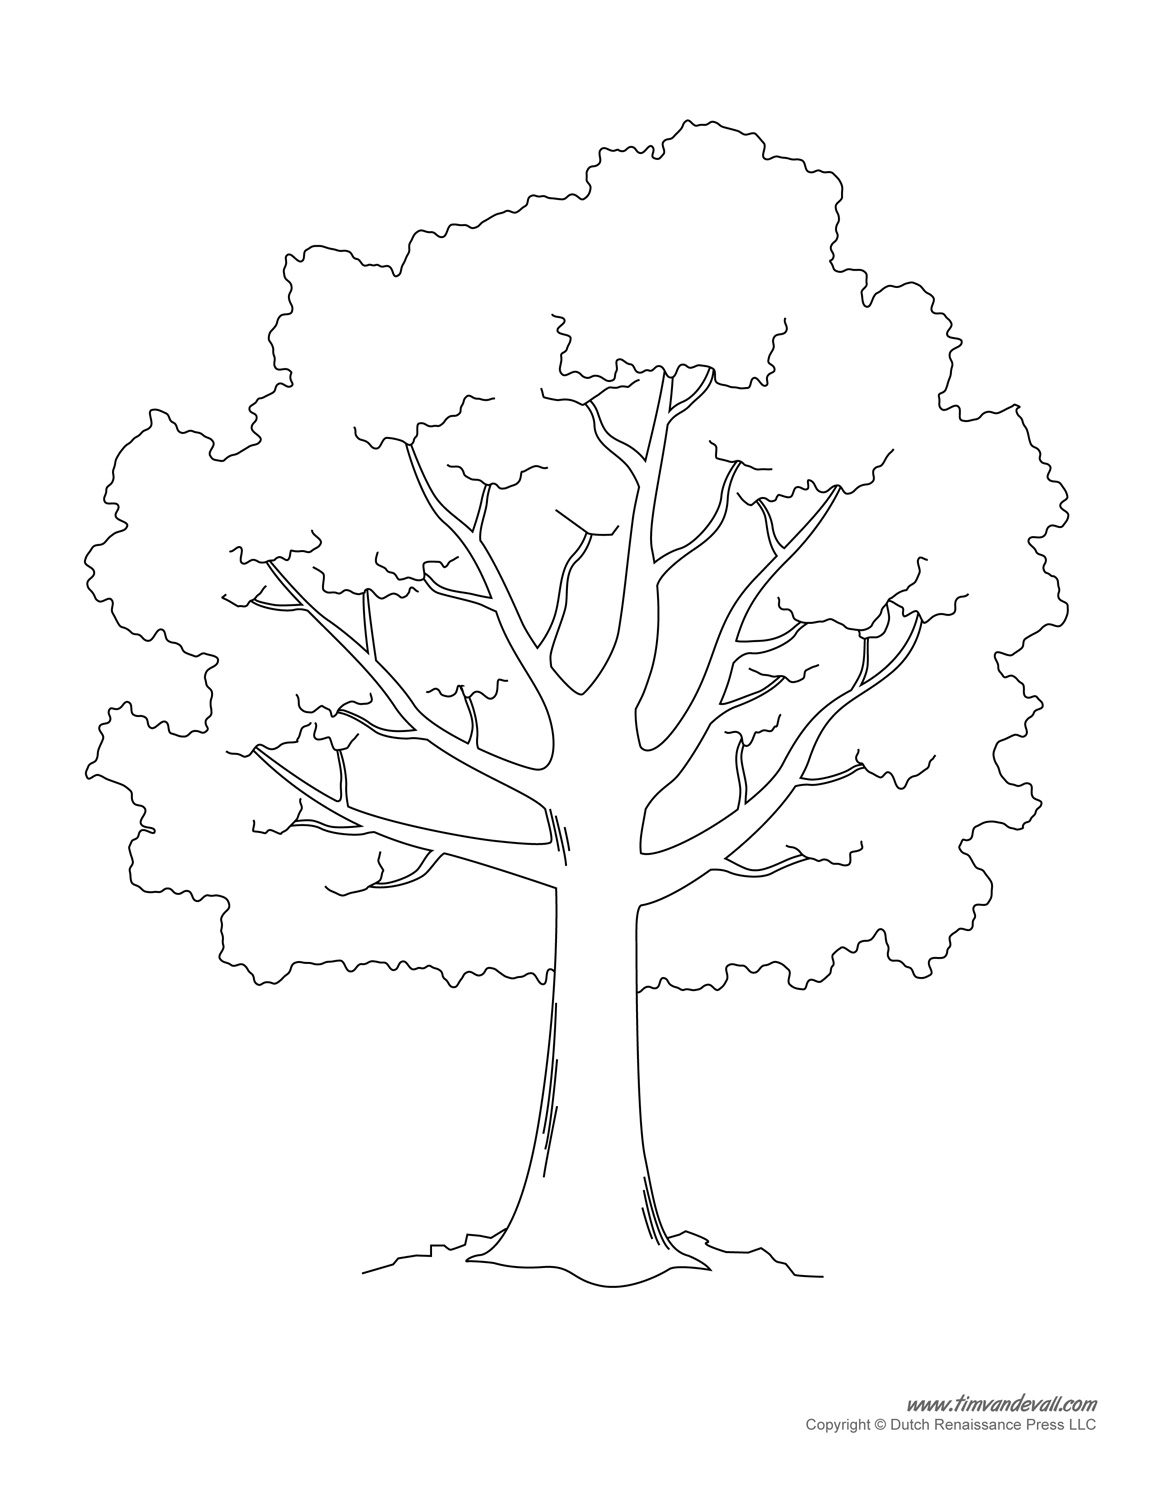 Mesmerizing image intended for tree outline printable